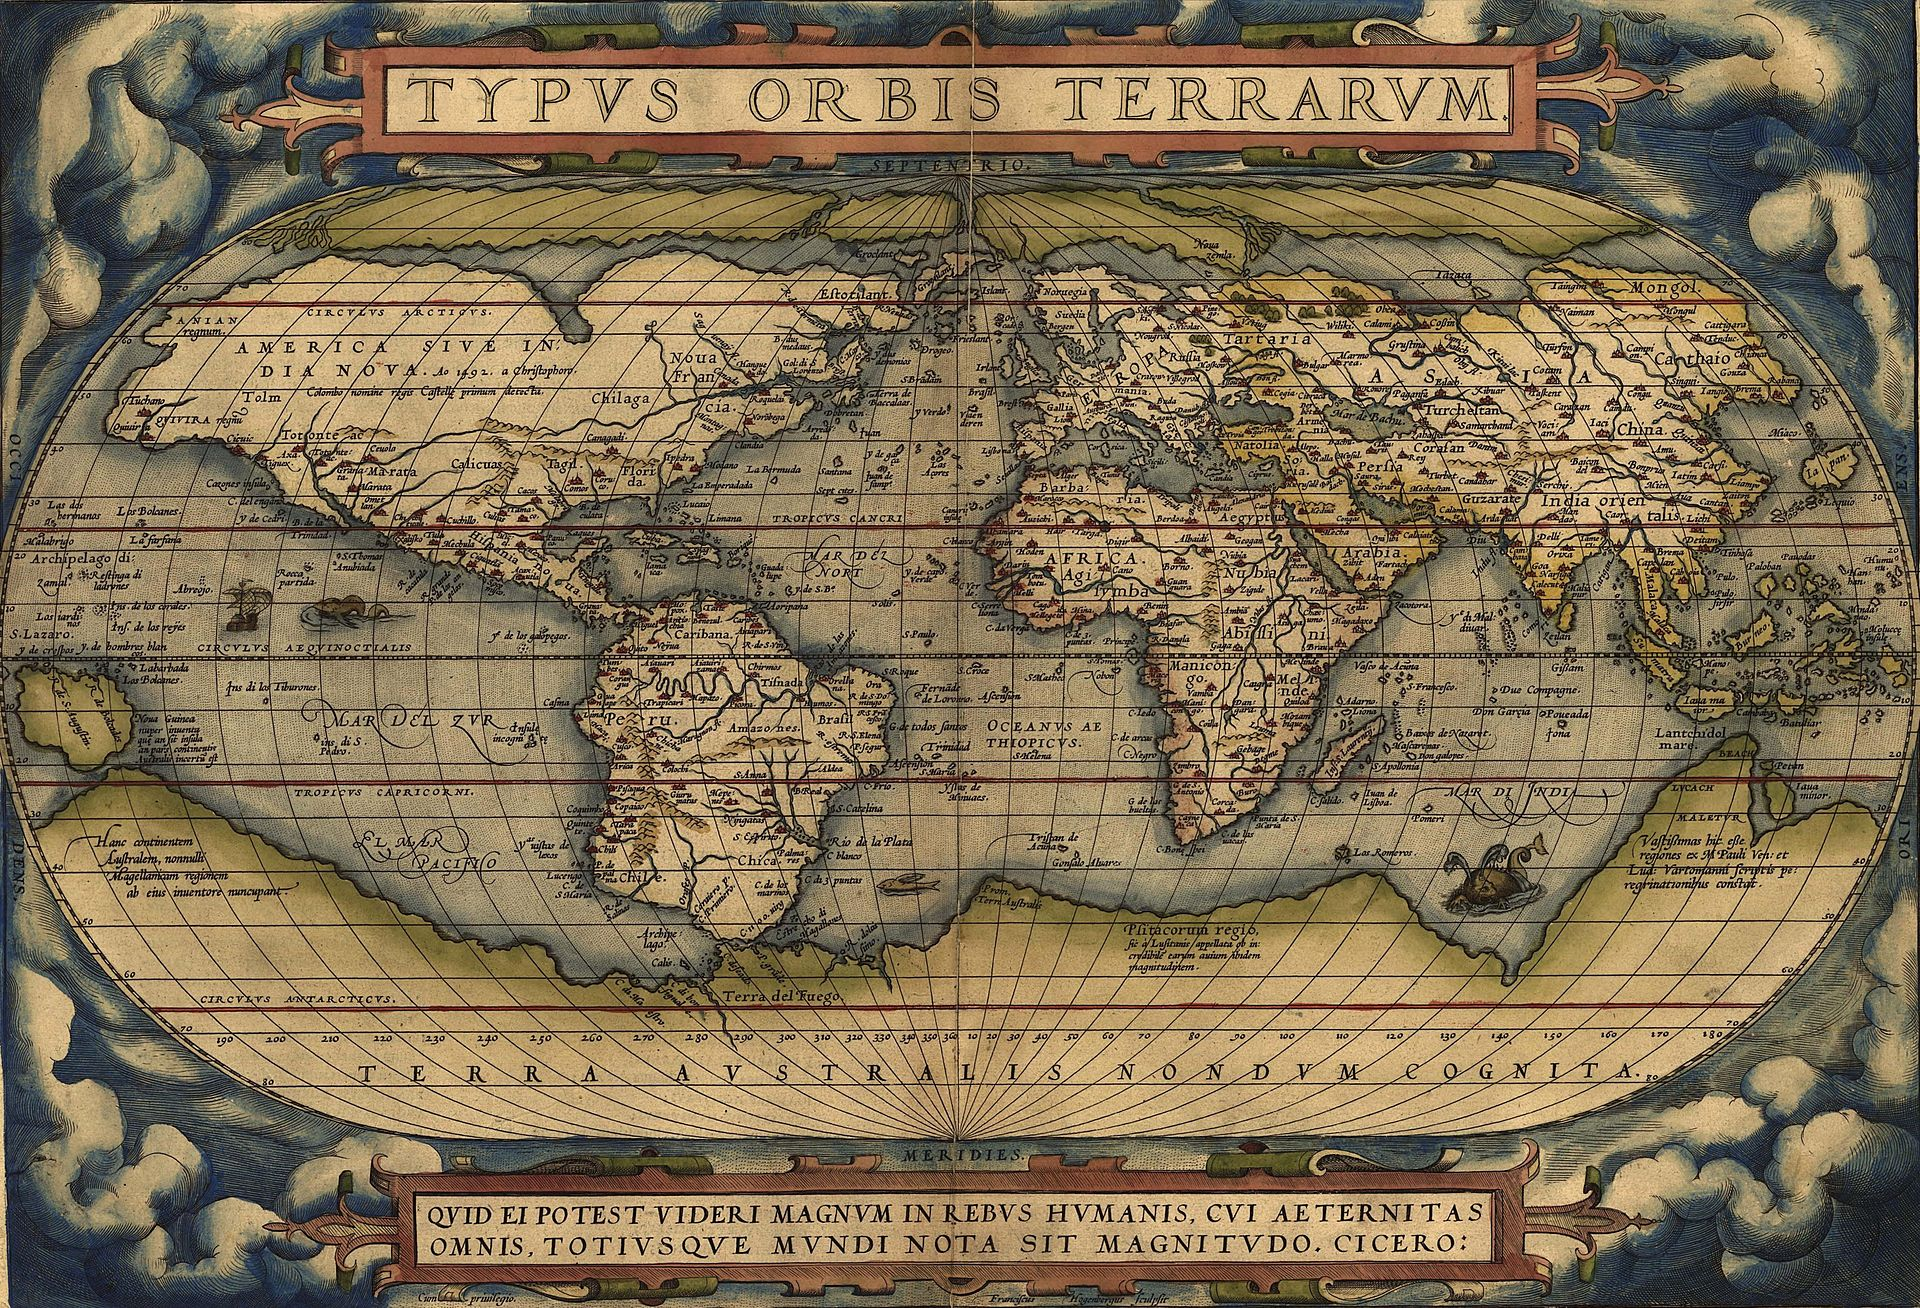 Mapping our world learnz this map was created by abraham ortelius and was first published in 1564 how have world maps changed since then image abraham ortelius wikipedia gumiabroncs Image collections